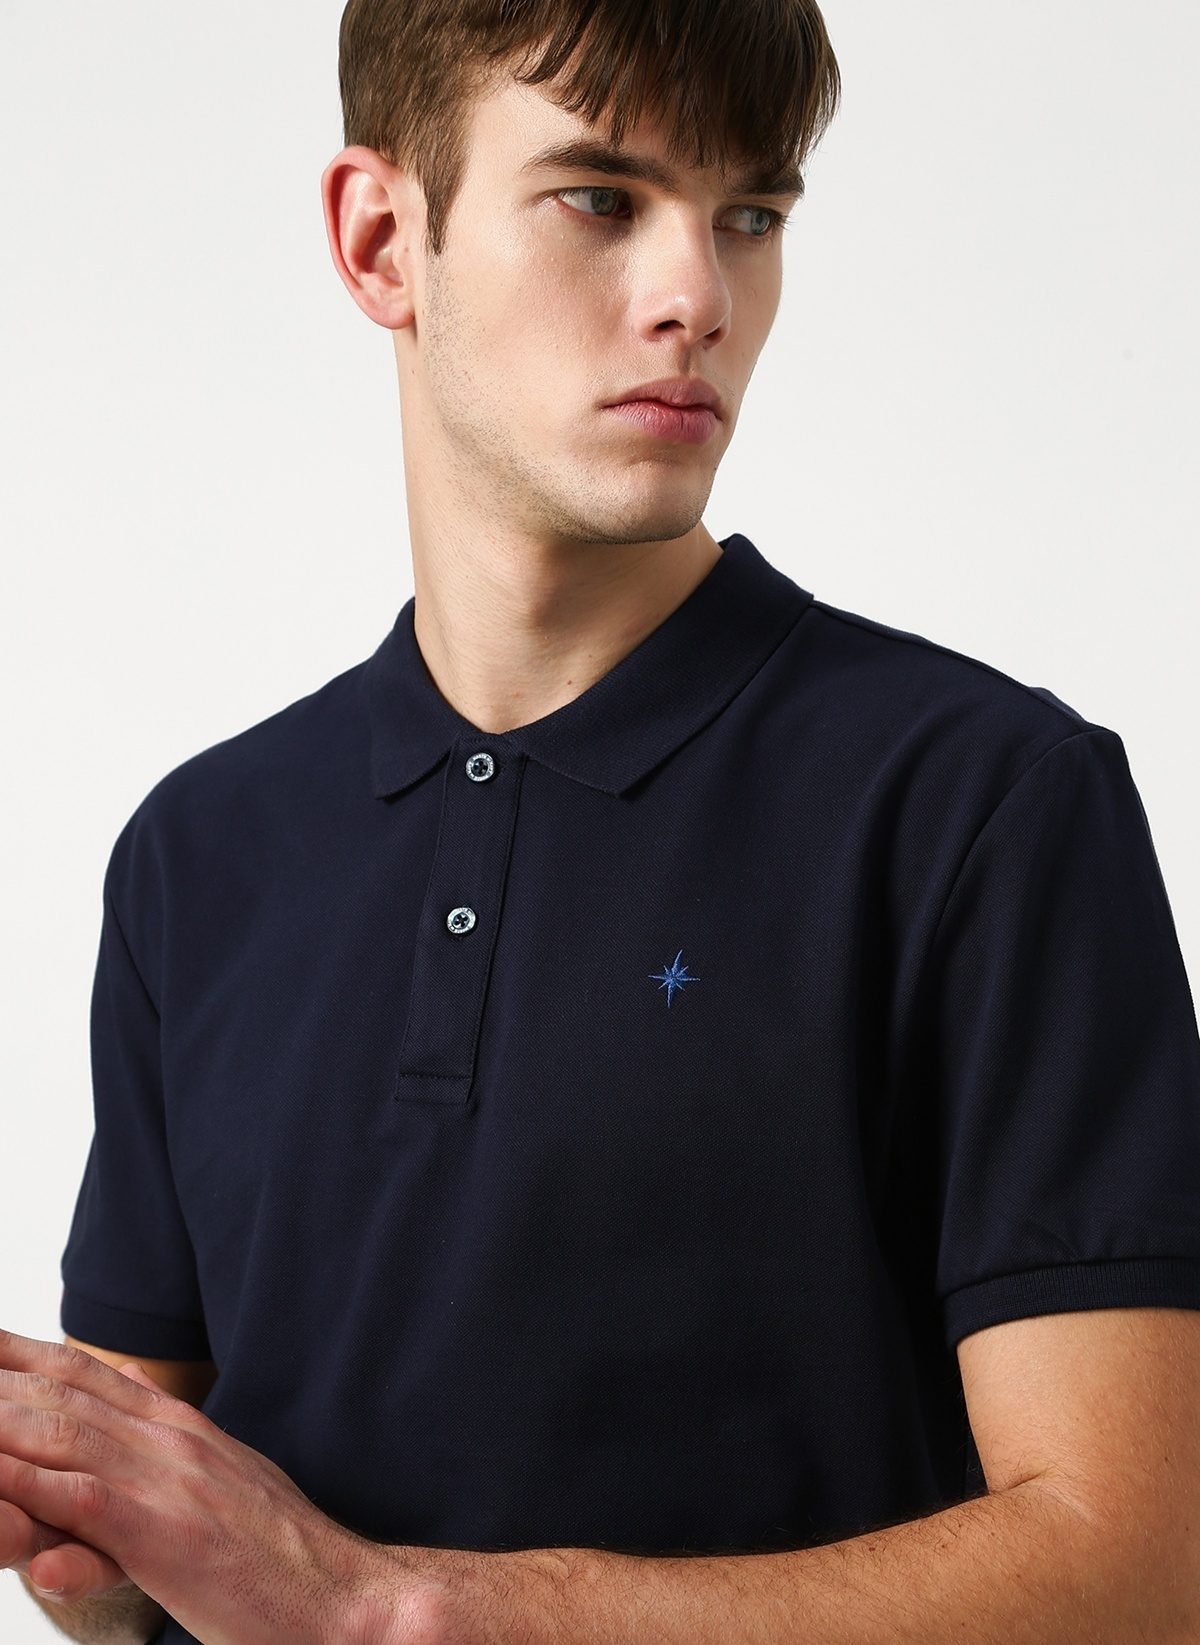 North Of Navy Tişört 19-polo-north Of Navy Polo T-shirt – 79.95 TL